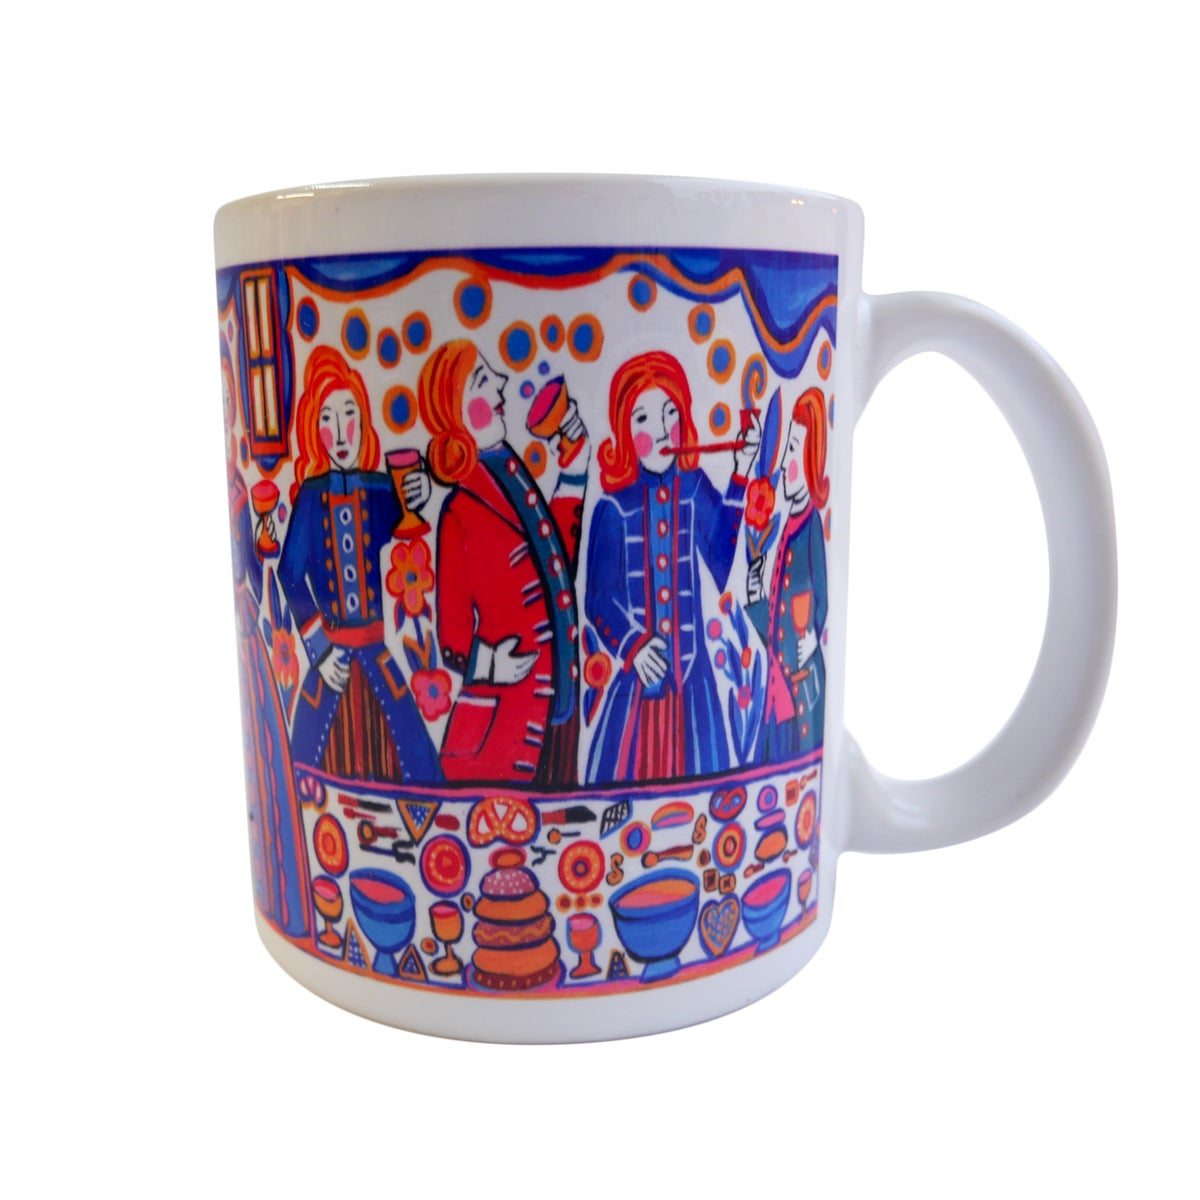 "Image of ""Fest"" Mugs by Alison Aune"